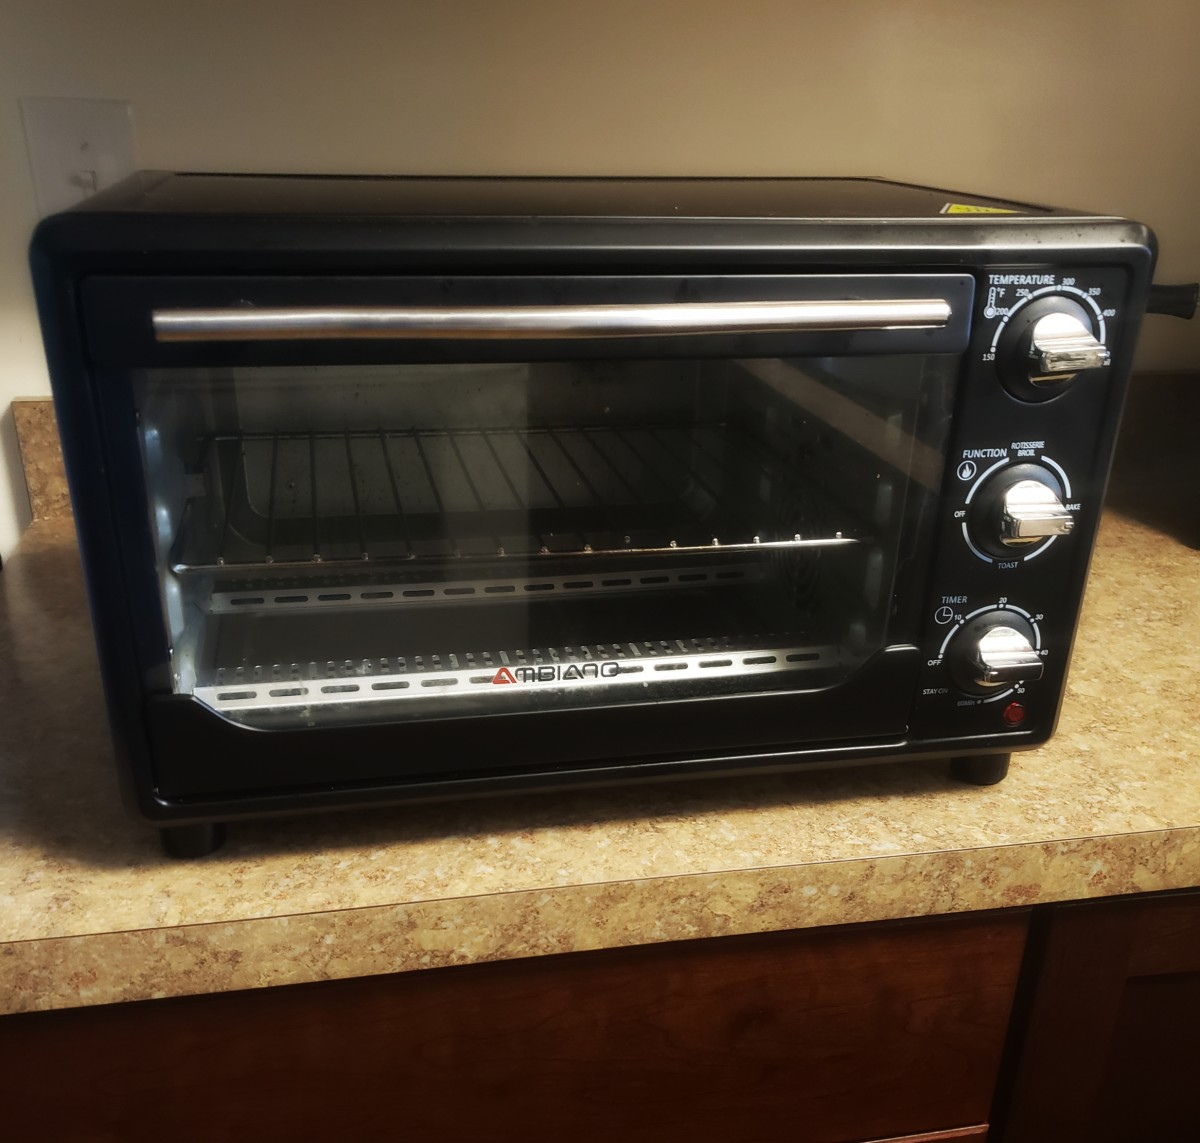 This convection oven makes cooking and baking quick and easy!